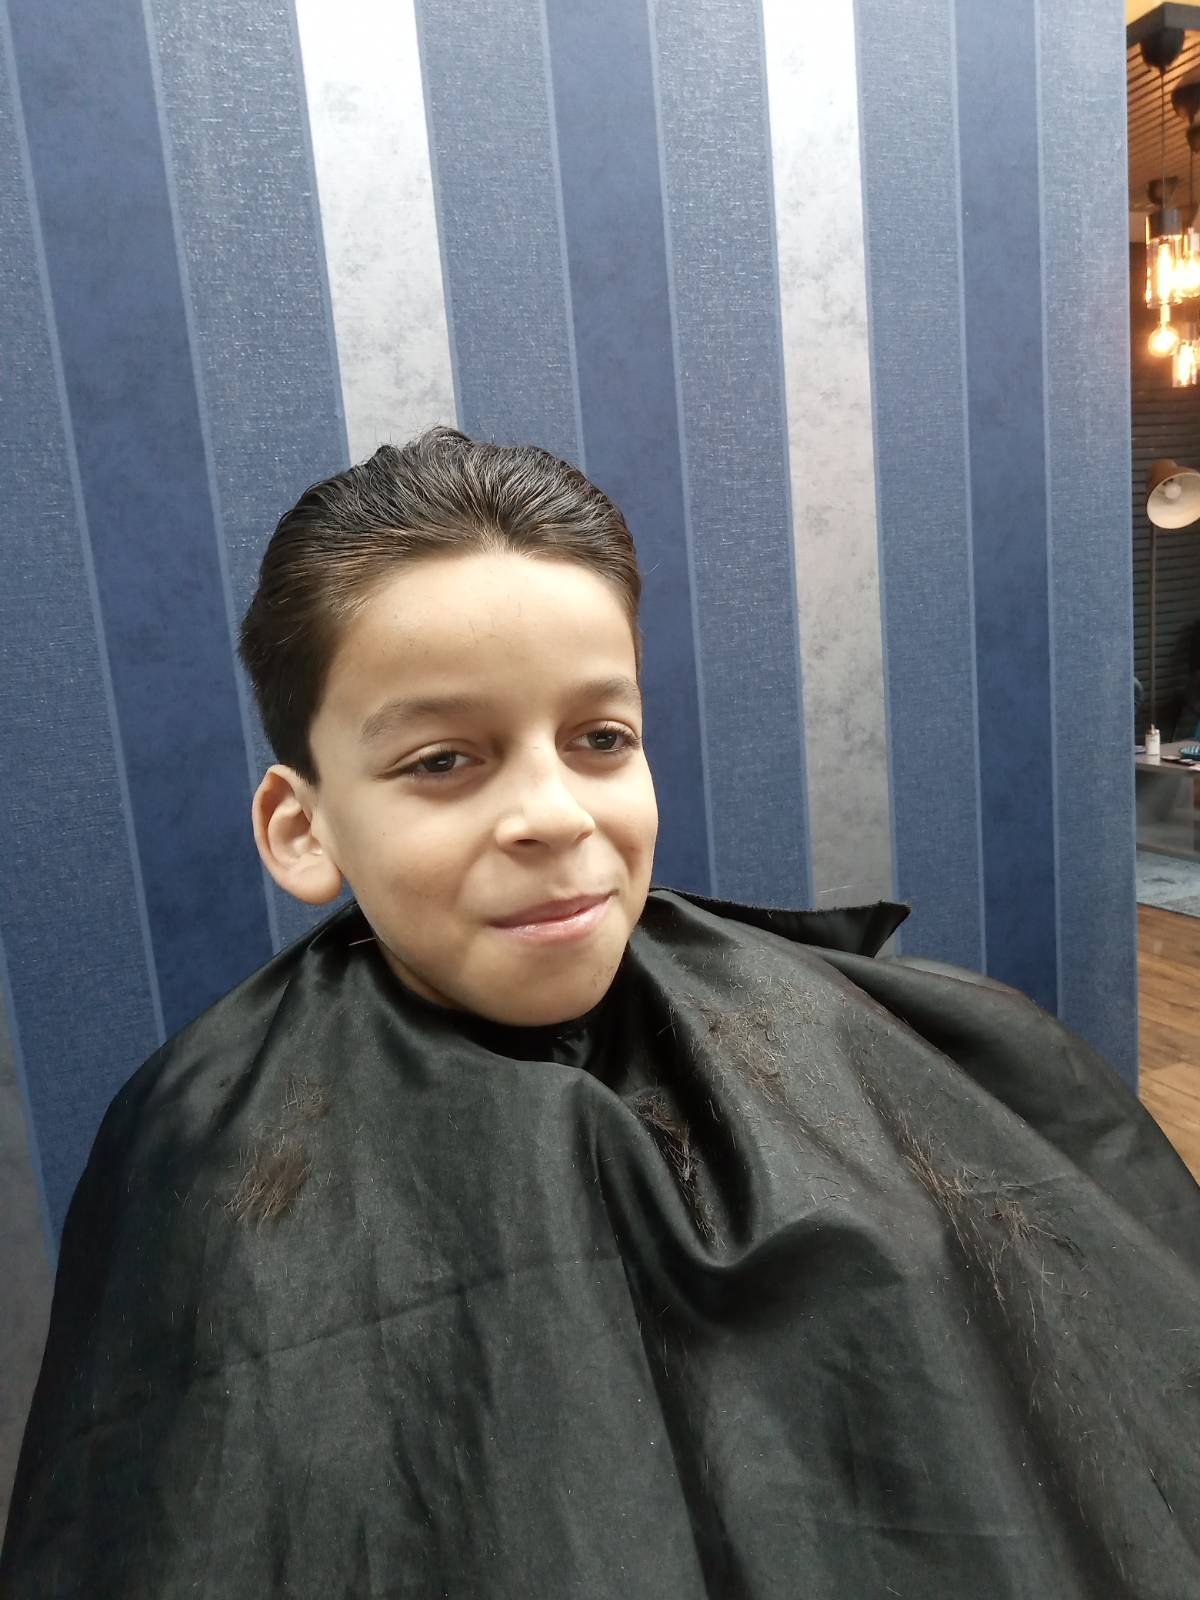 Tyreese's big charity hair cut raised £182.05 for trust in 2020